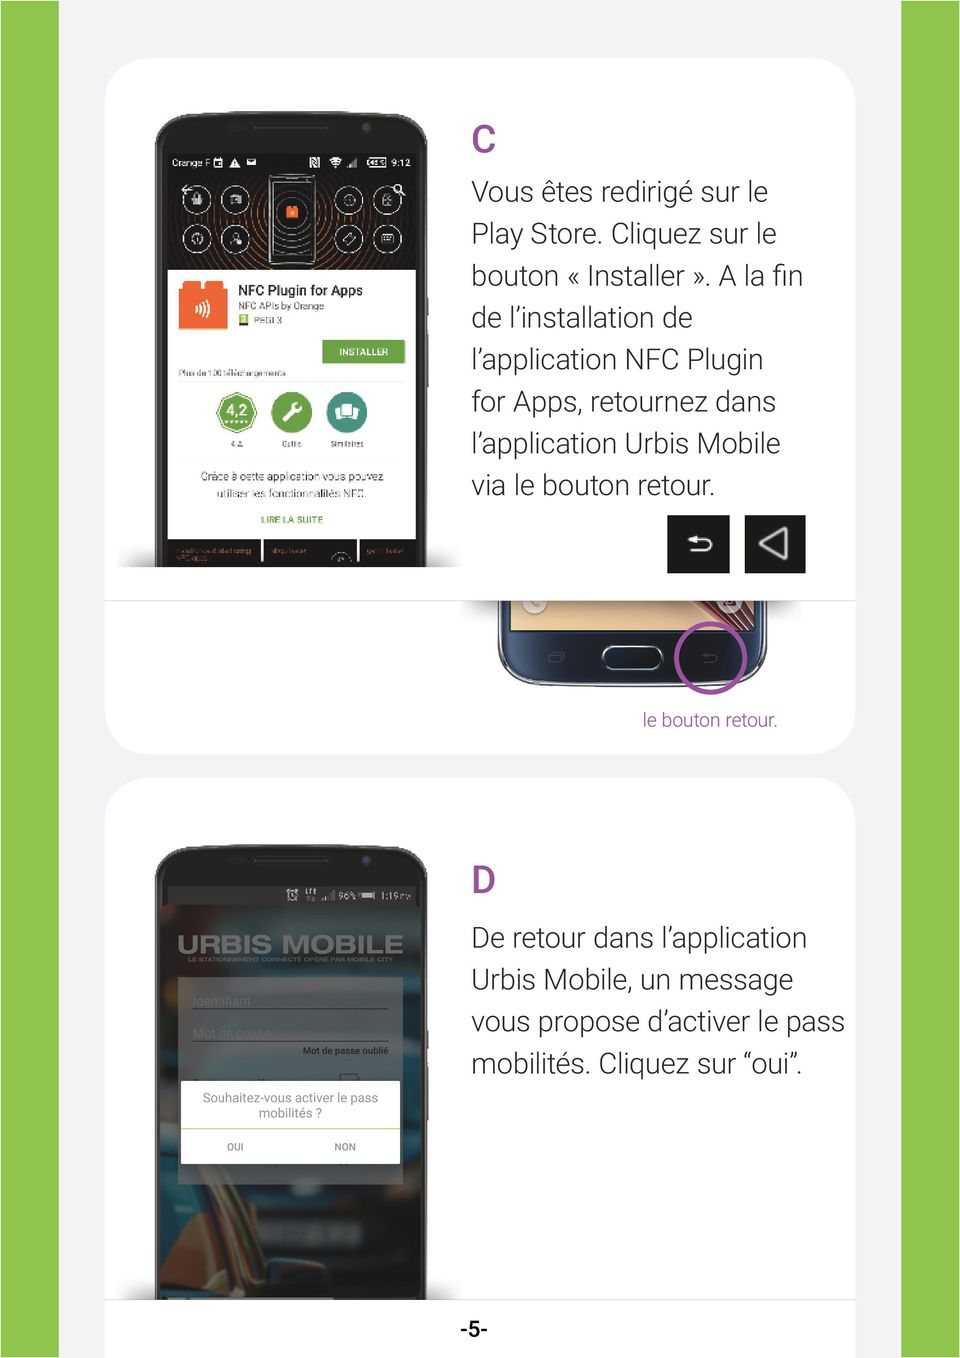 application Urbis Mobile via le bouton retour.